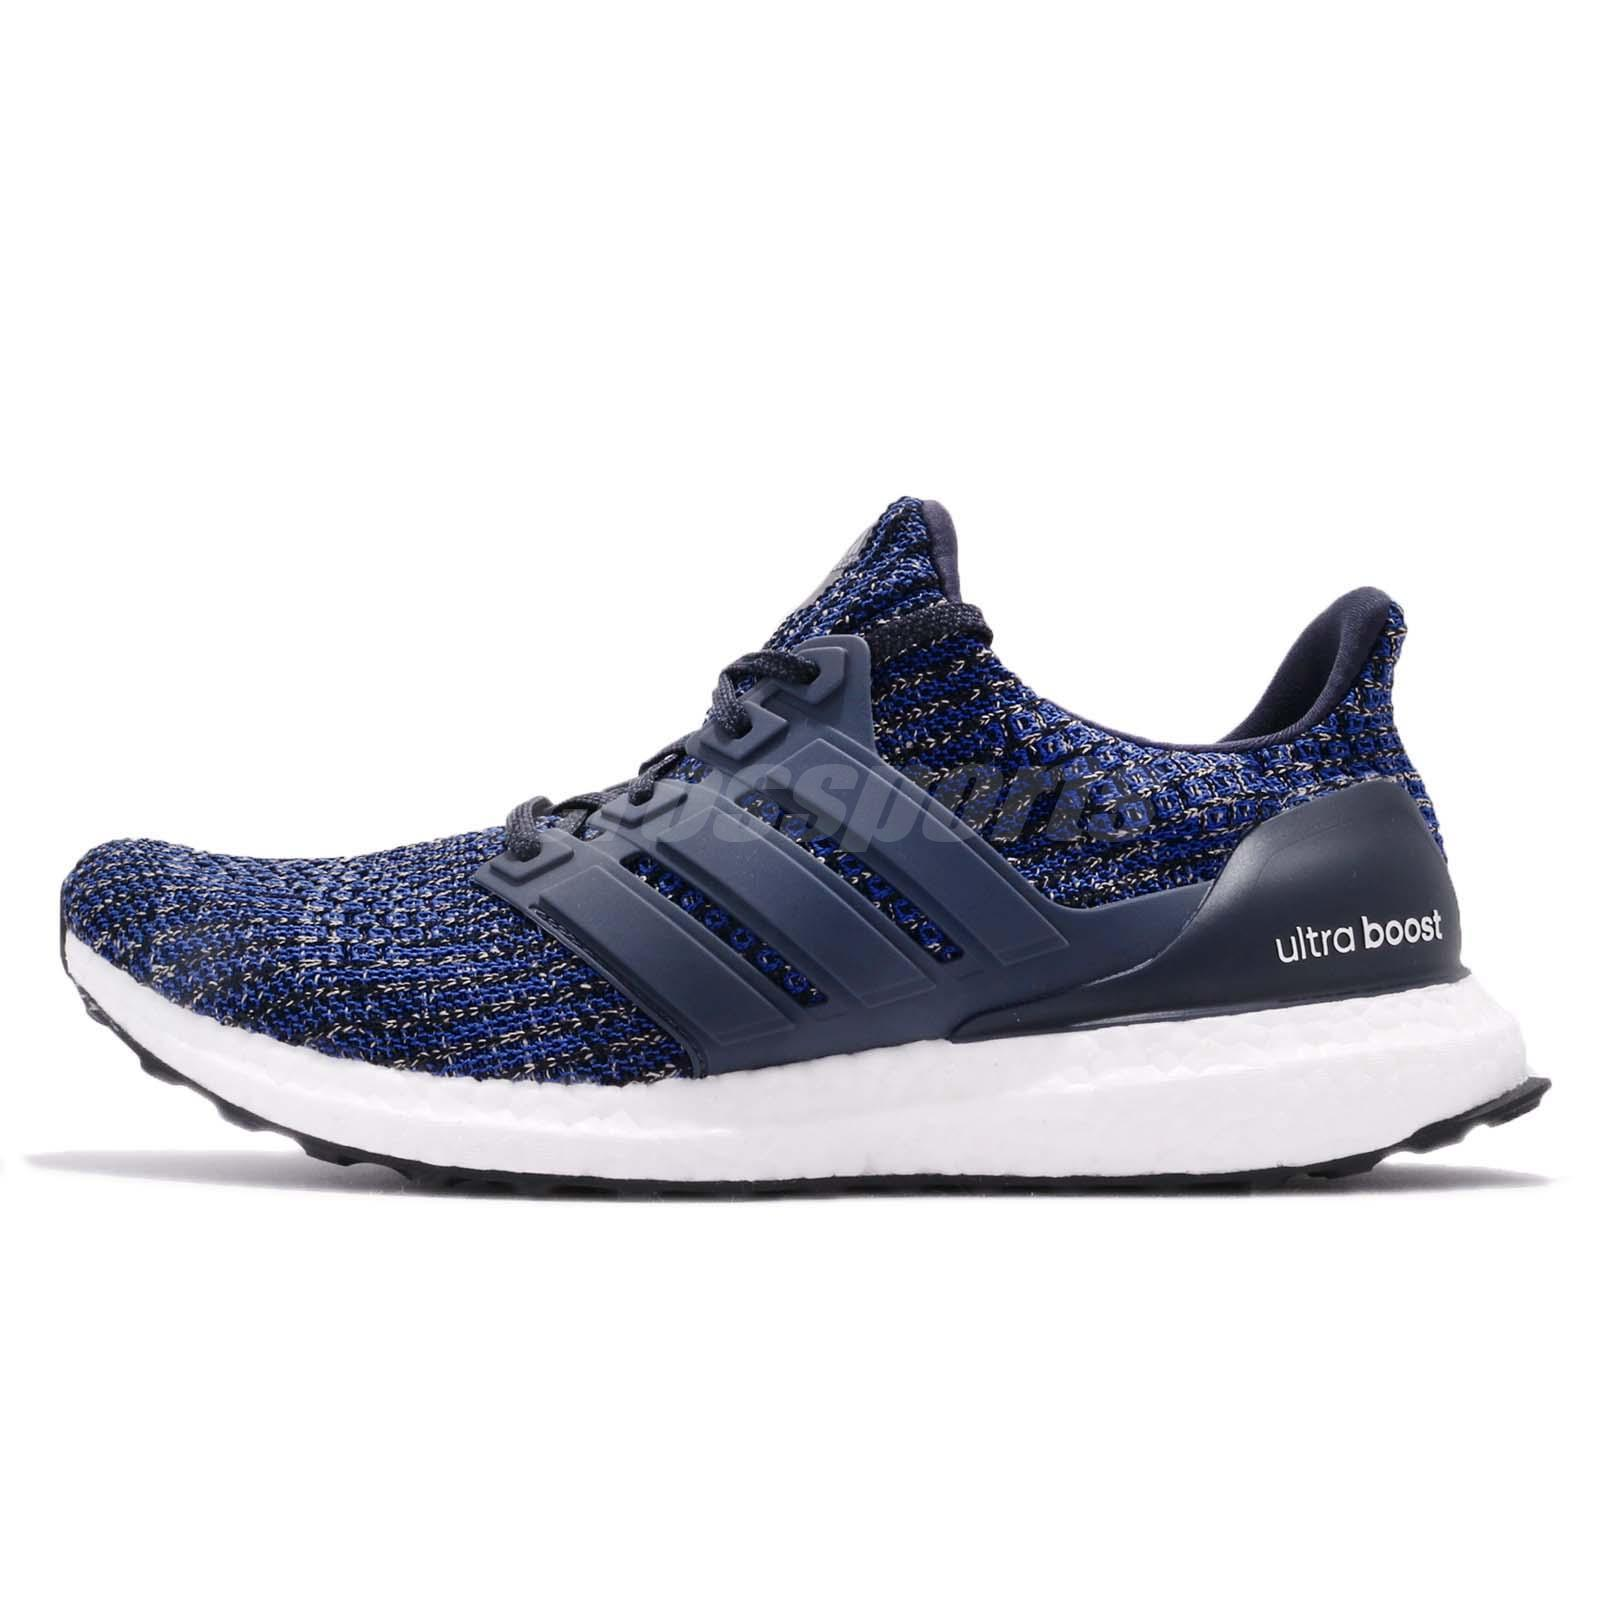 89db6b594 adidas UltraBOOST 4.0 Carbon Legend Ink Navy Black Men Running Shoes CP9250